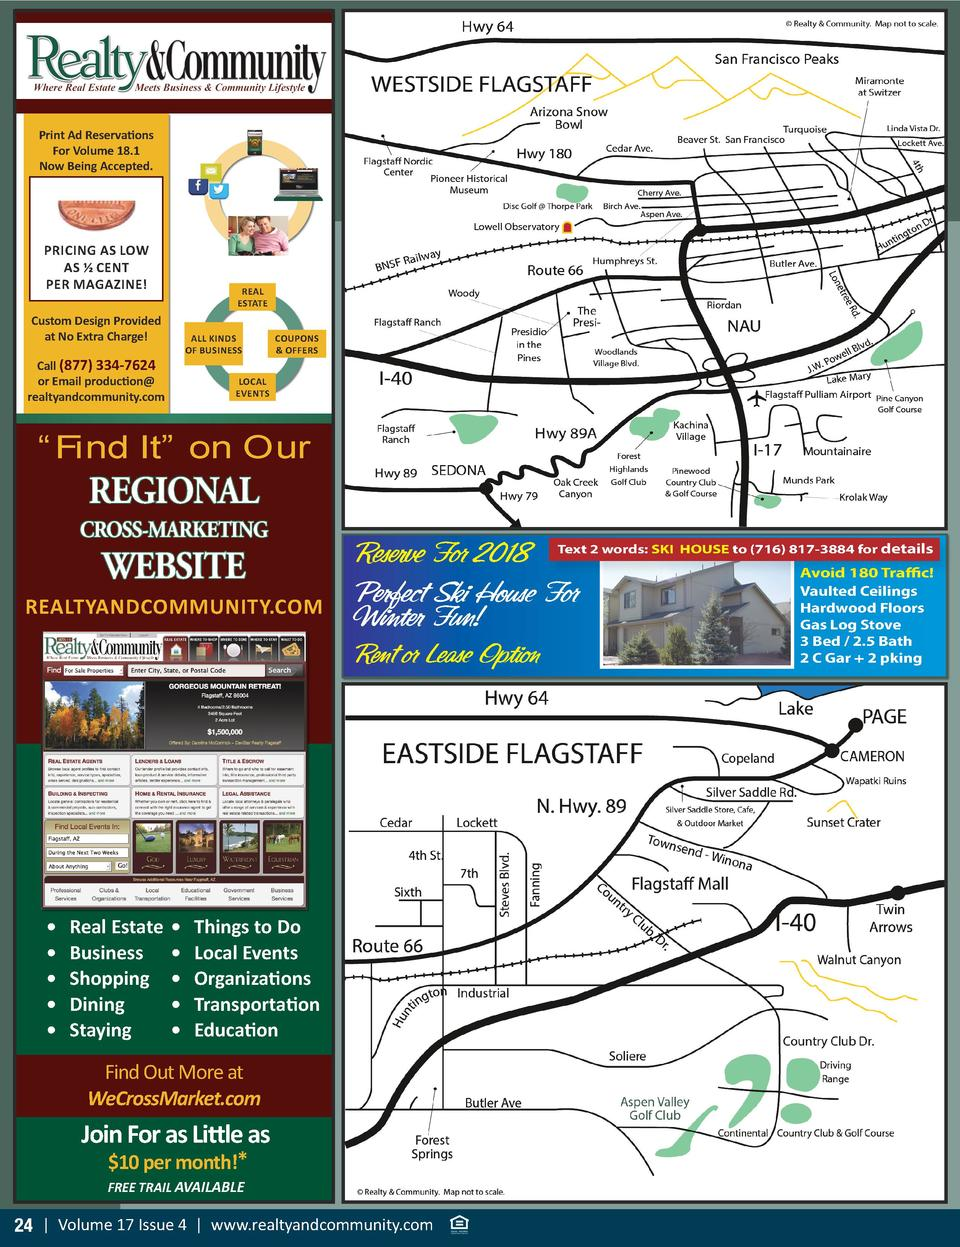 Print Ad Reservations For Volume 18.1 Now Being Accepted.  PRICING AS LOW AS    CENT PER MAGAZINE   REAL ESTATE  Custom De...